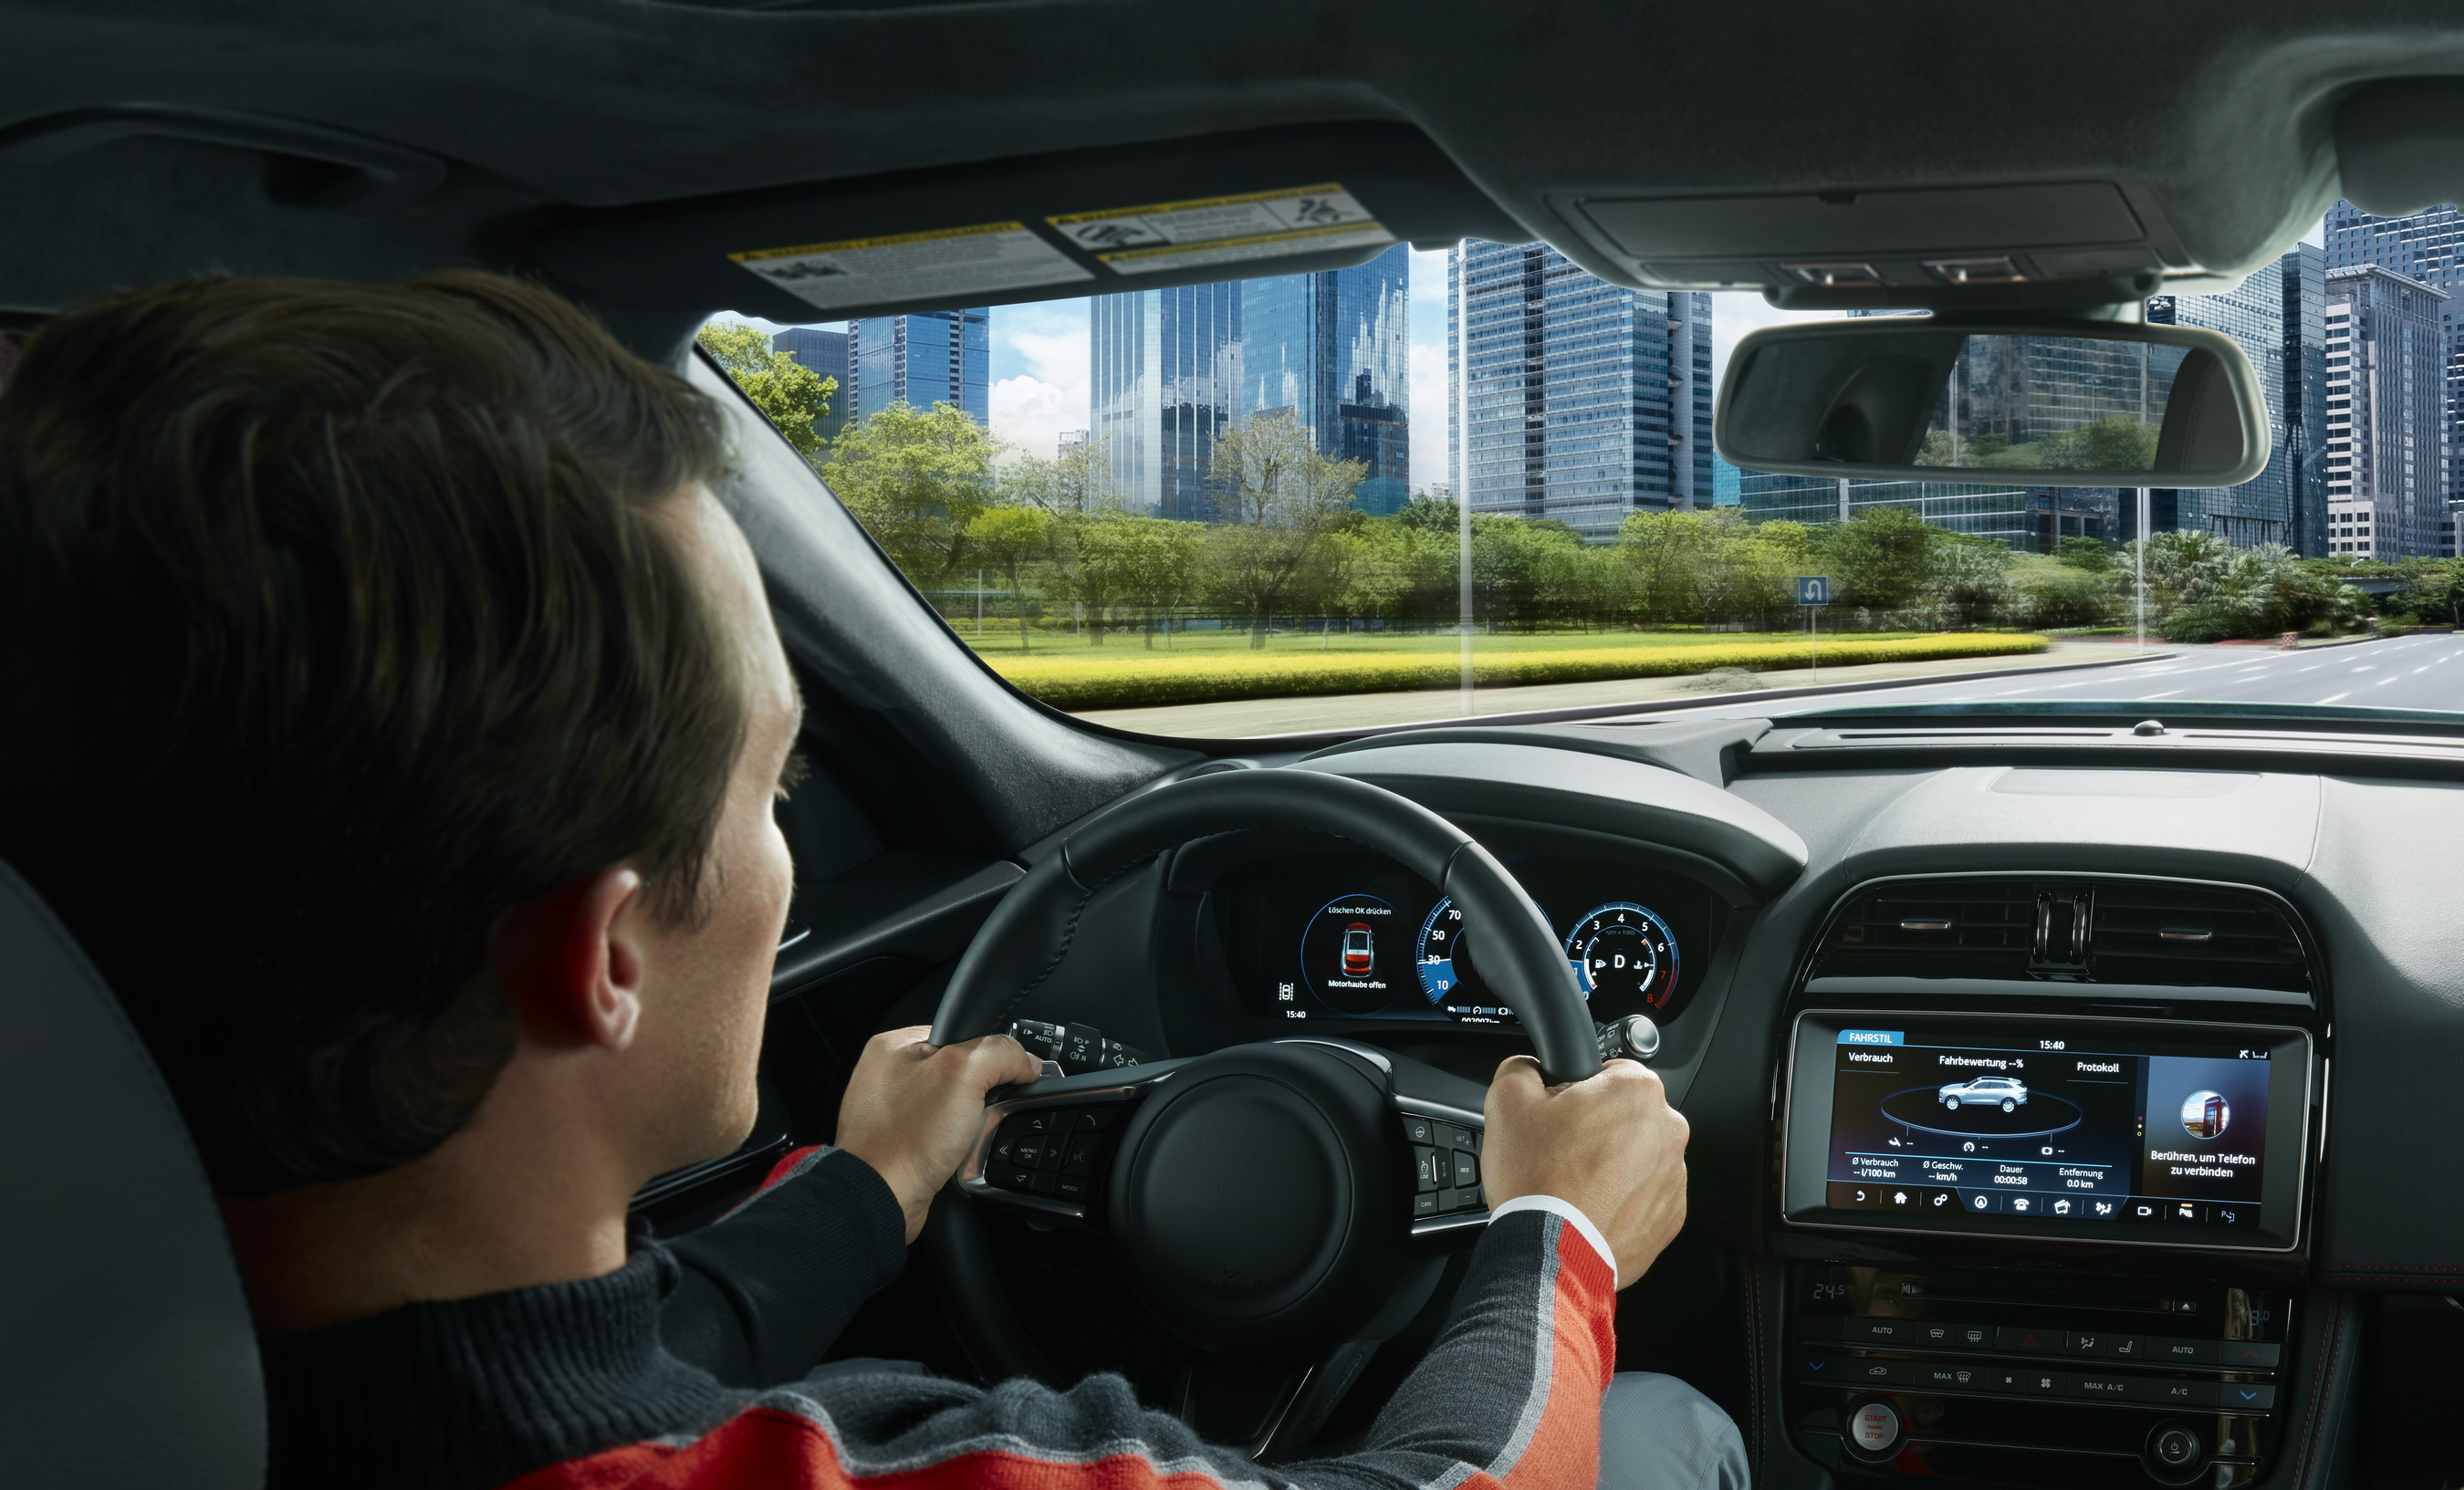 Jaguar F-PACE with 12.3-inch fully reconfigurable instrument cluster and 10-inch center display from Visteon.